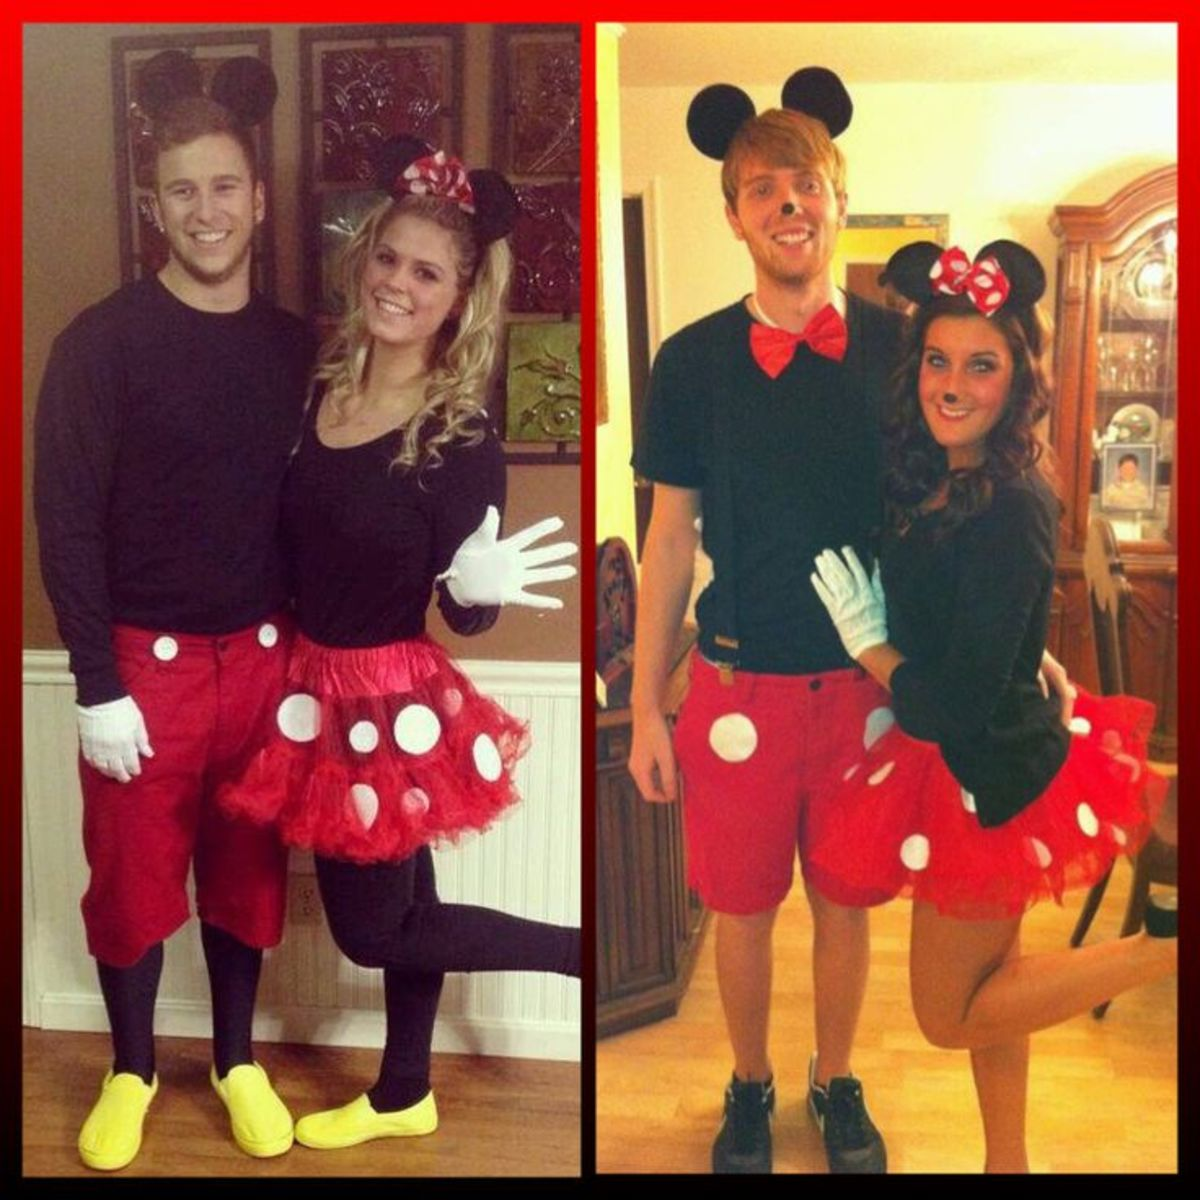 Mickey and Minnie Mouse have been great costume ideas for years now and they still do not disappoint.  Such a cute couple's costume idea!